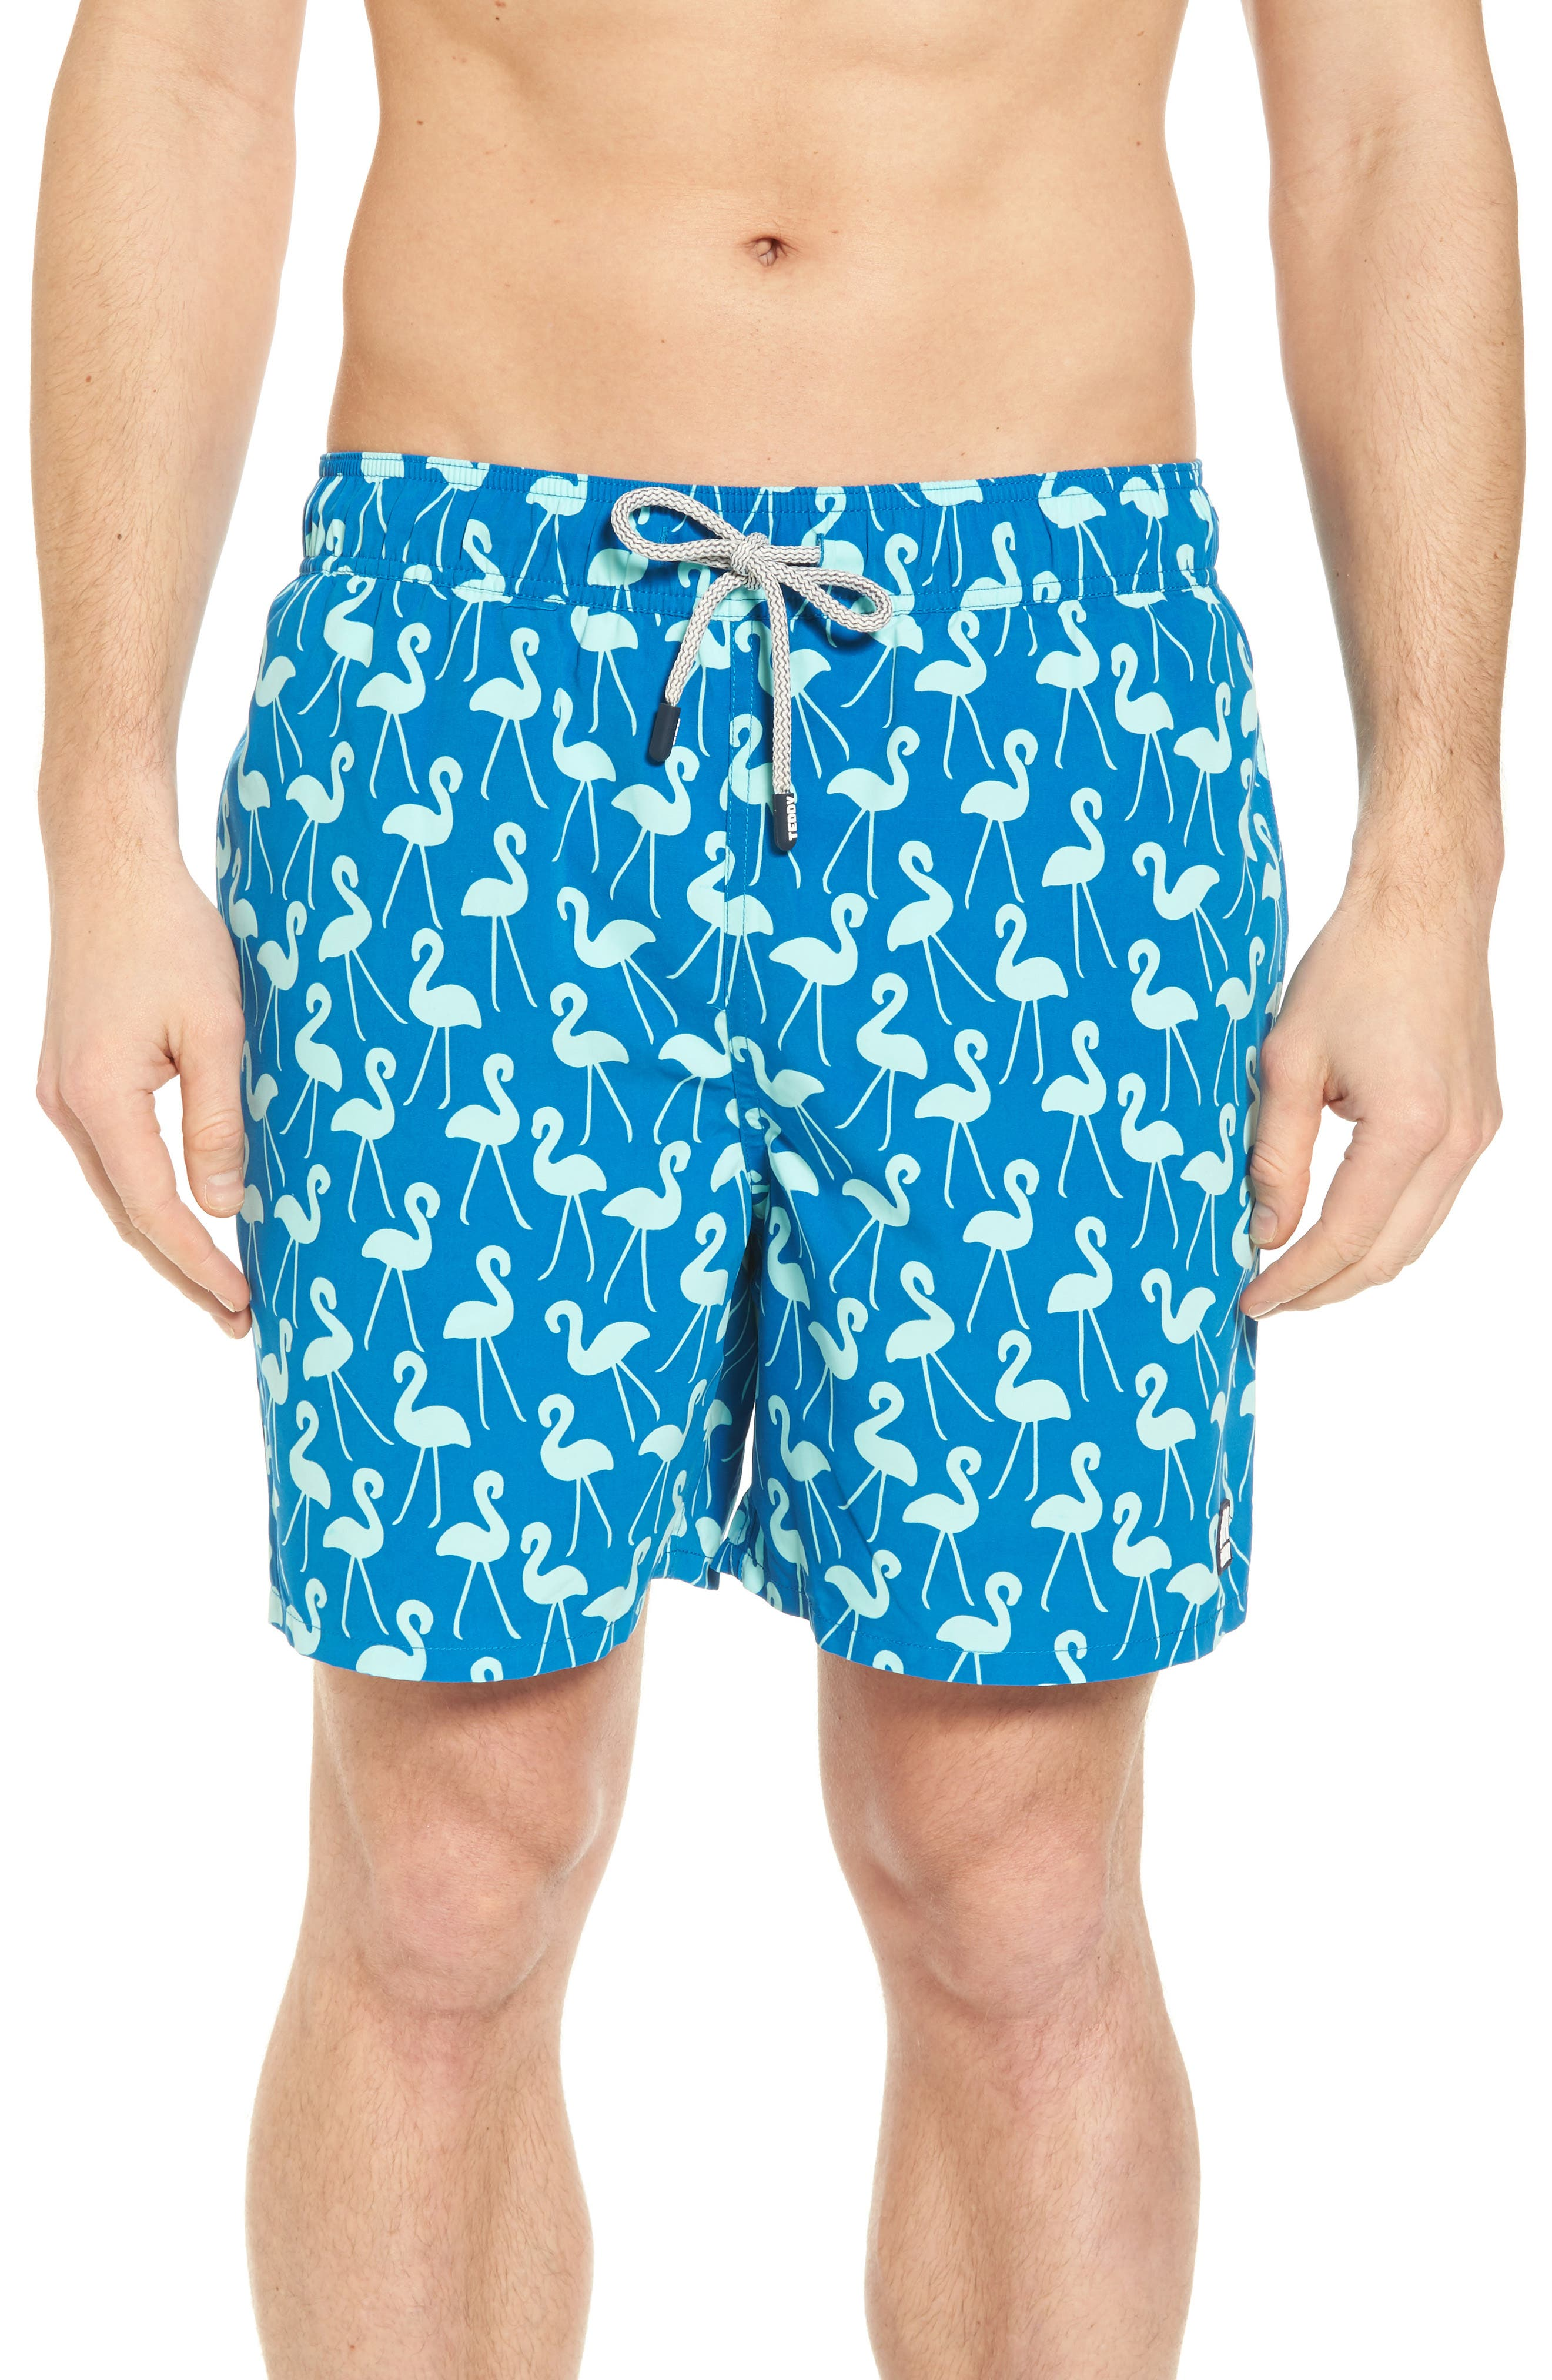 Flamingo Print Swim Trunks,                             Main thumbnail 1, color,                             Sky Blue